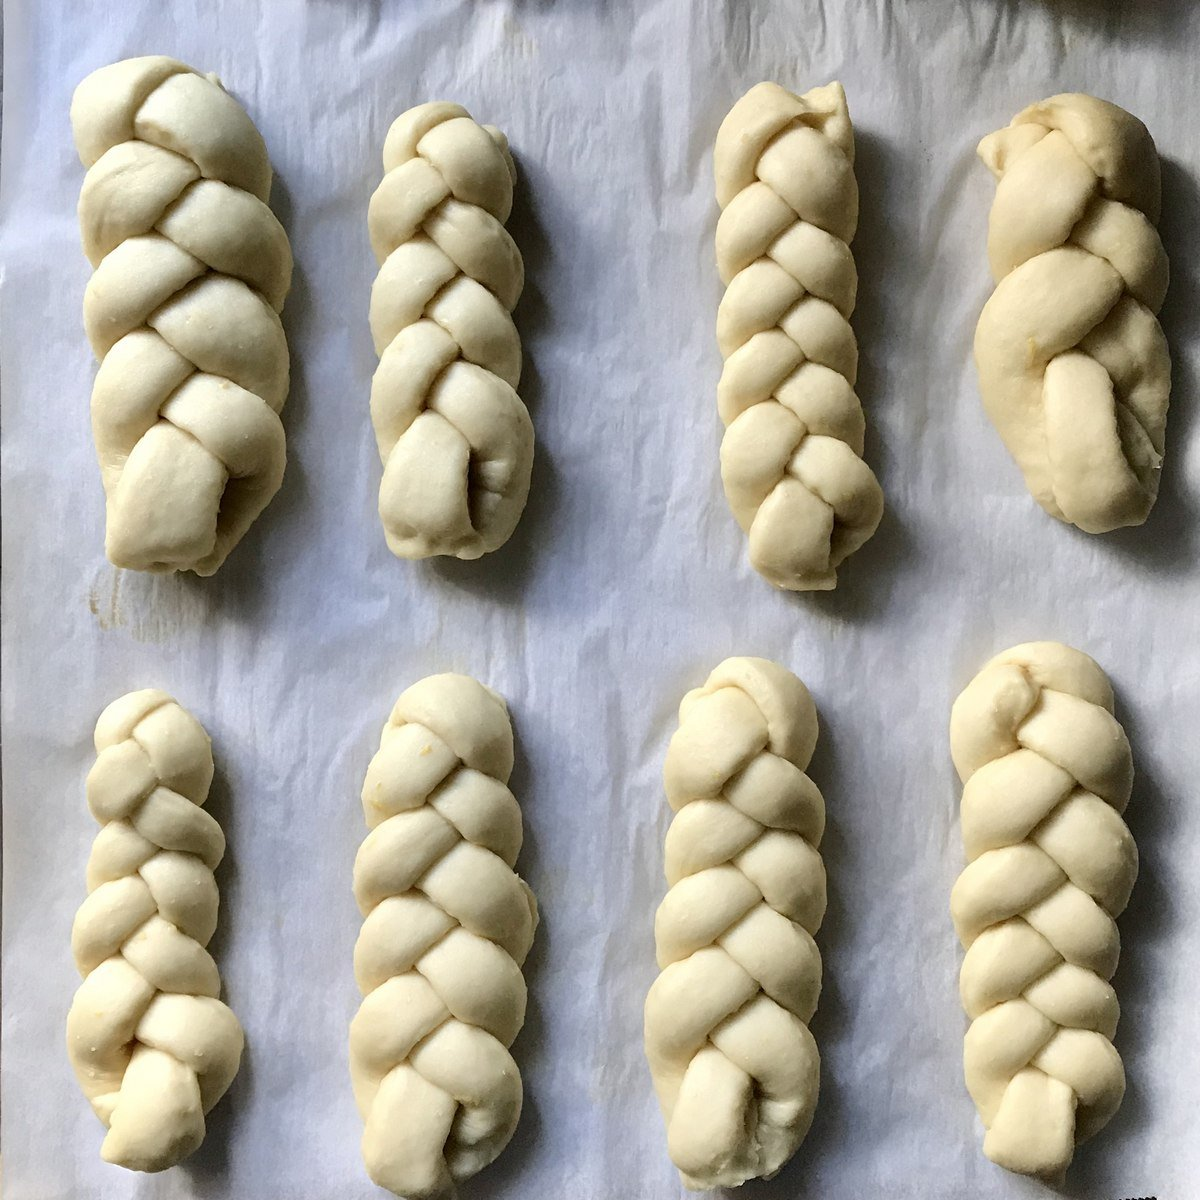 Braided sweet dough on a parchment lined cookie sheet.